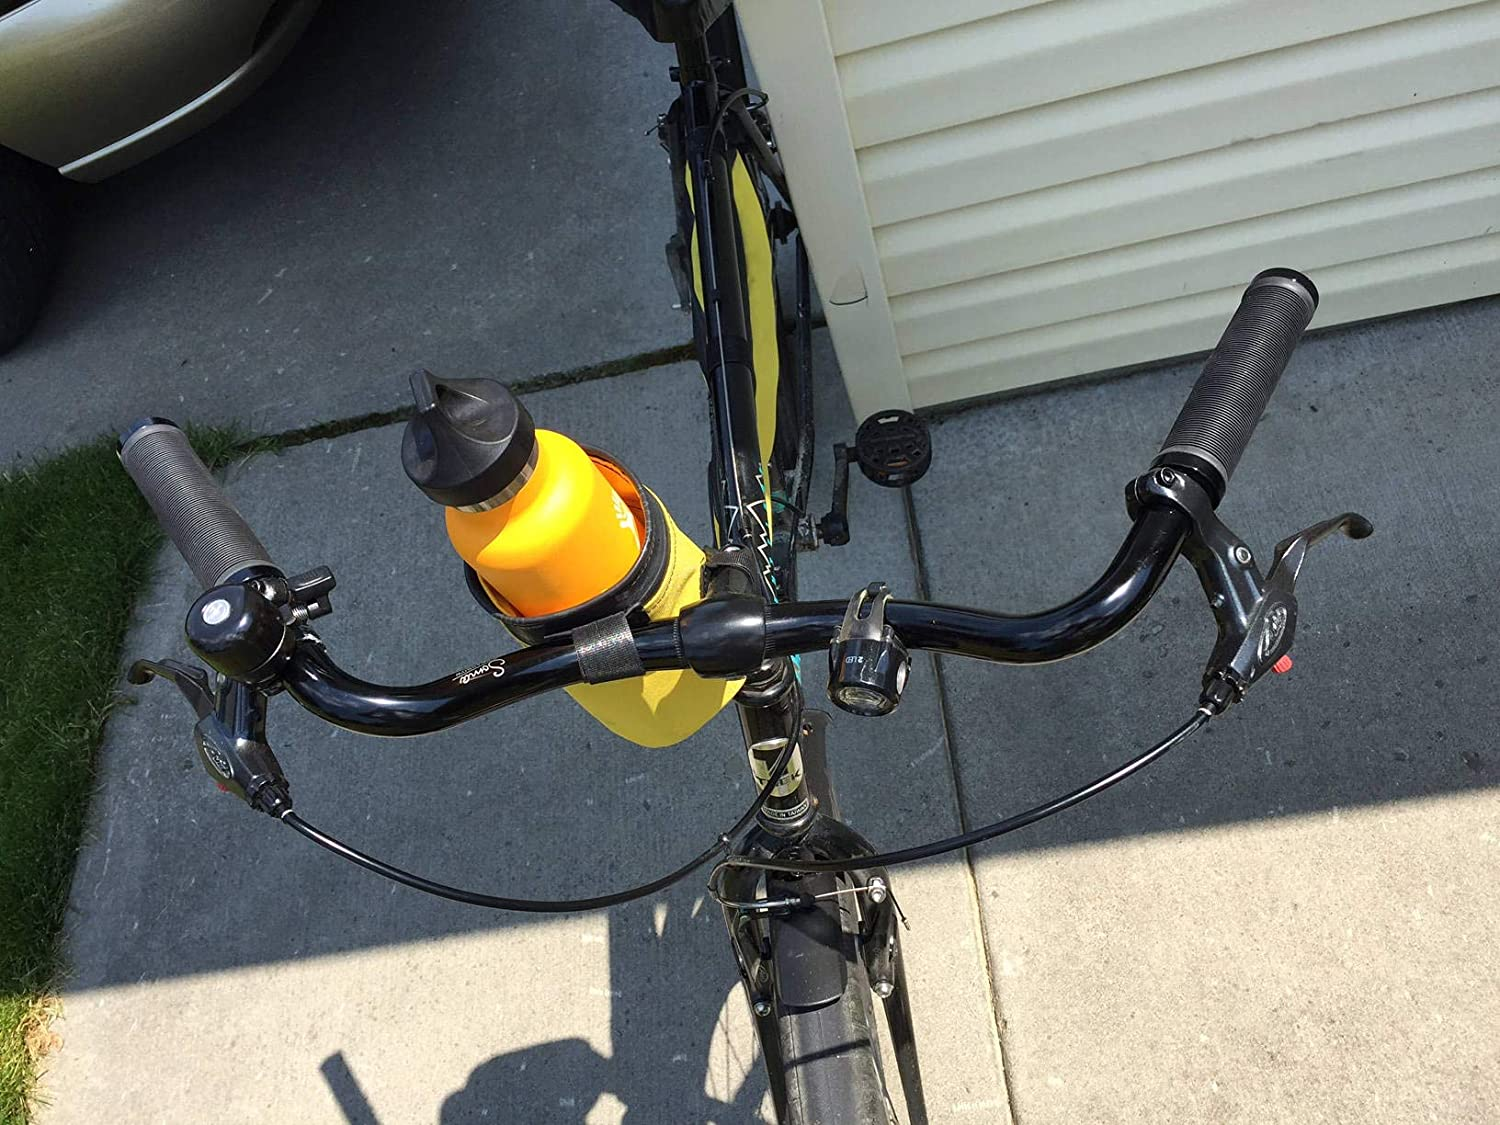 BUCKET handlebar mounted carrier for your water bottle or beverage made from used bike inner tubes